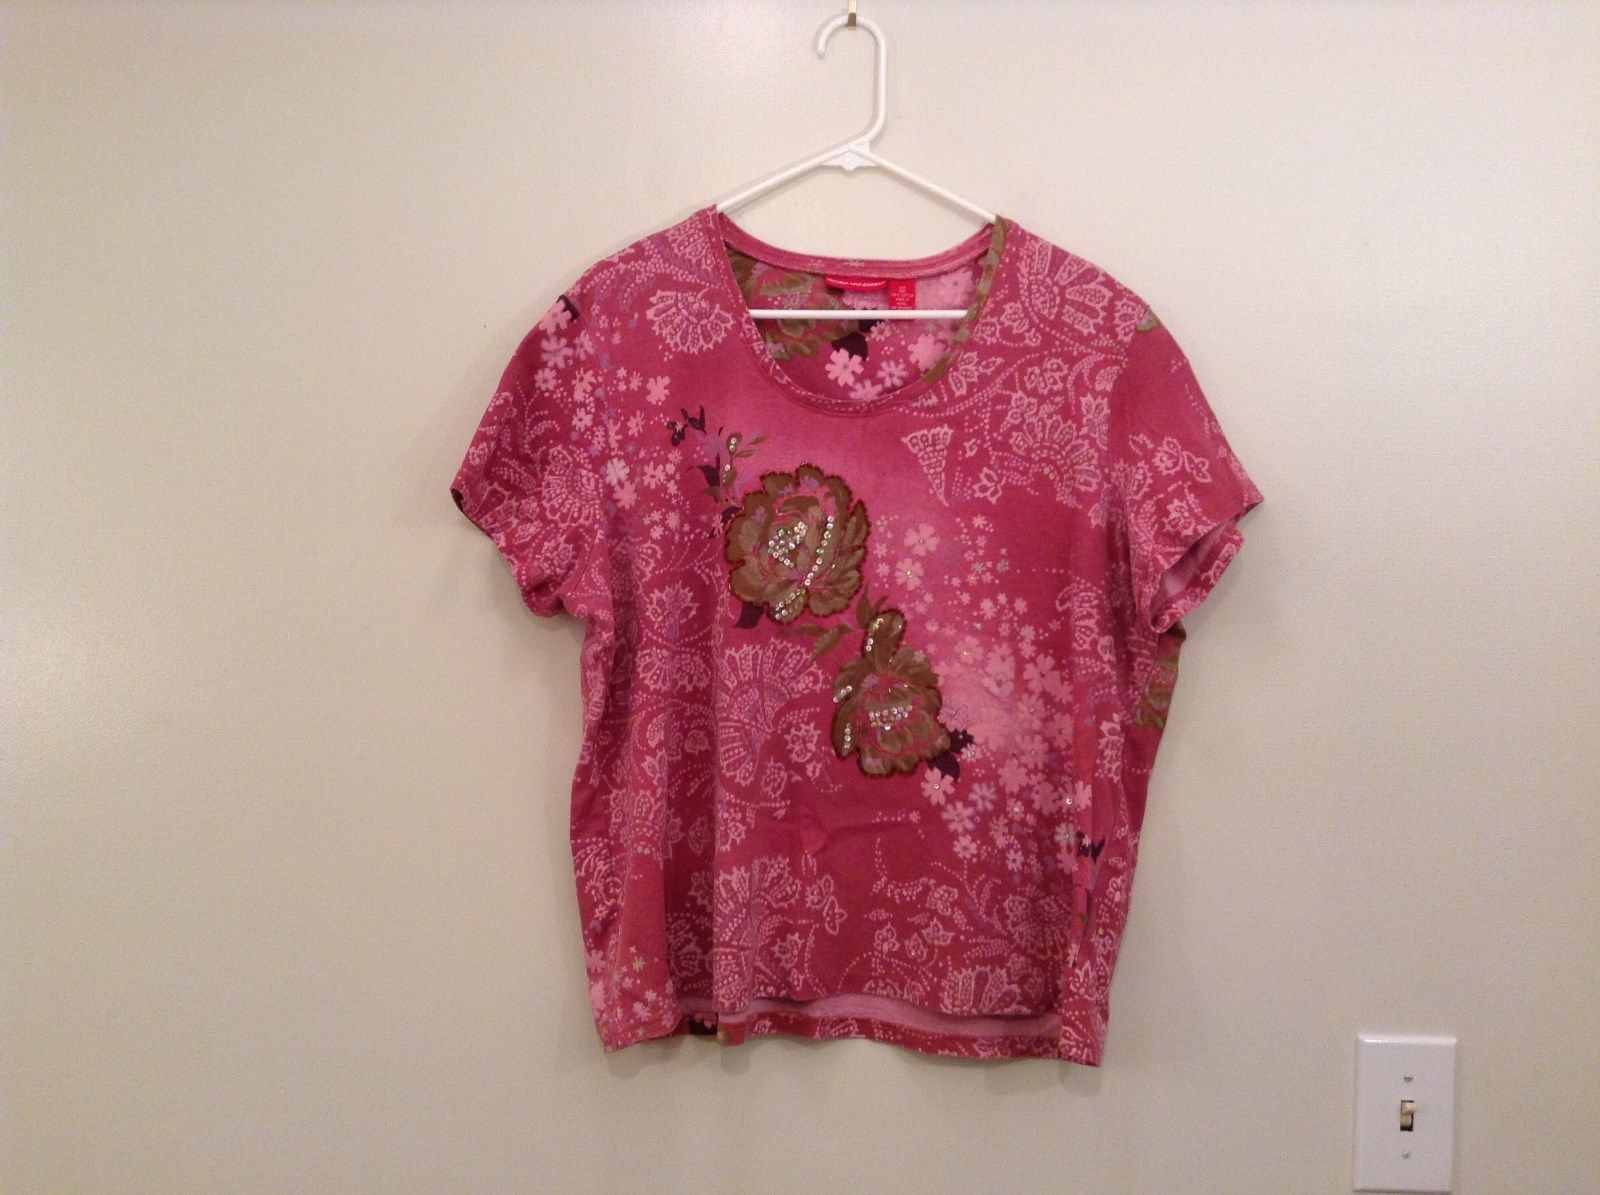 Pink with Sequins on Front Short Sleeve Cotton Top Gloria Vanderbilt Size 2X